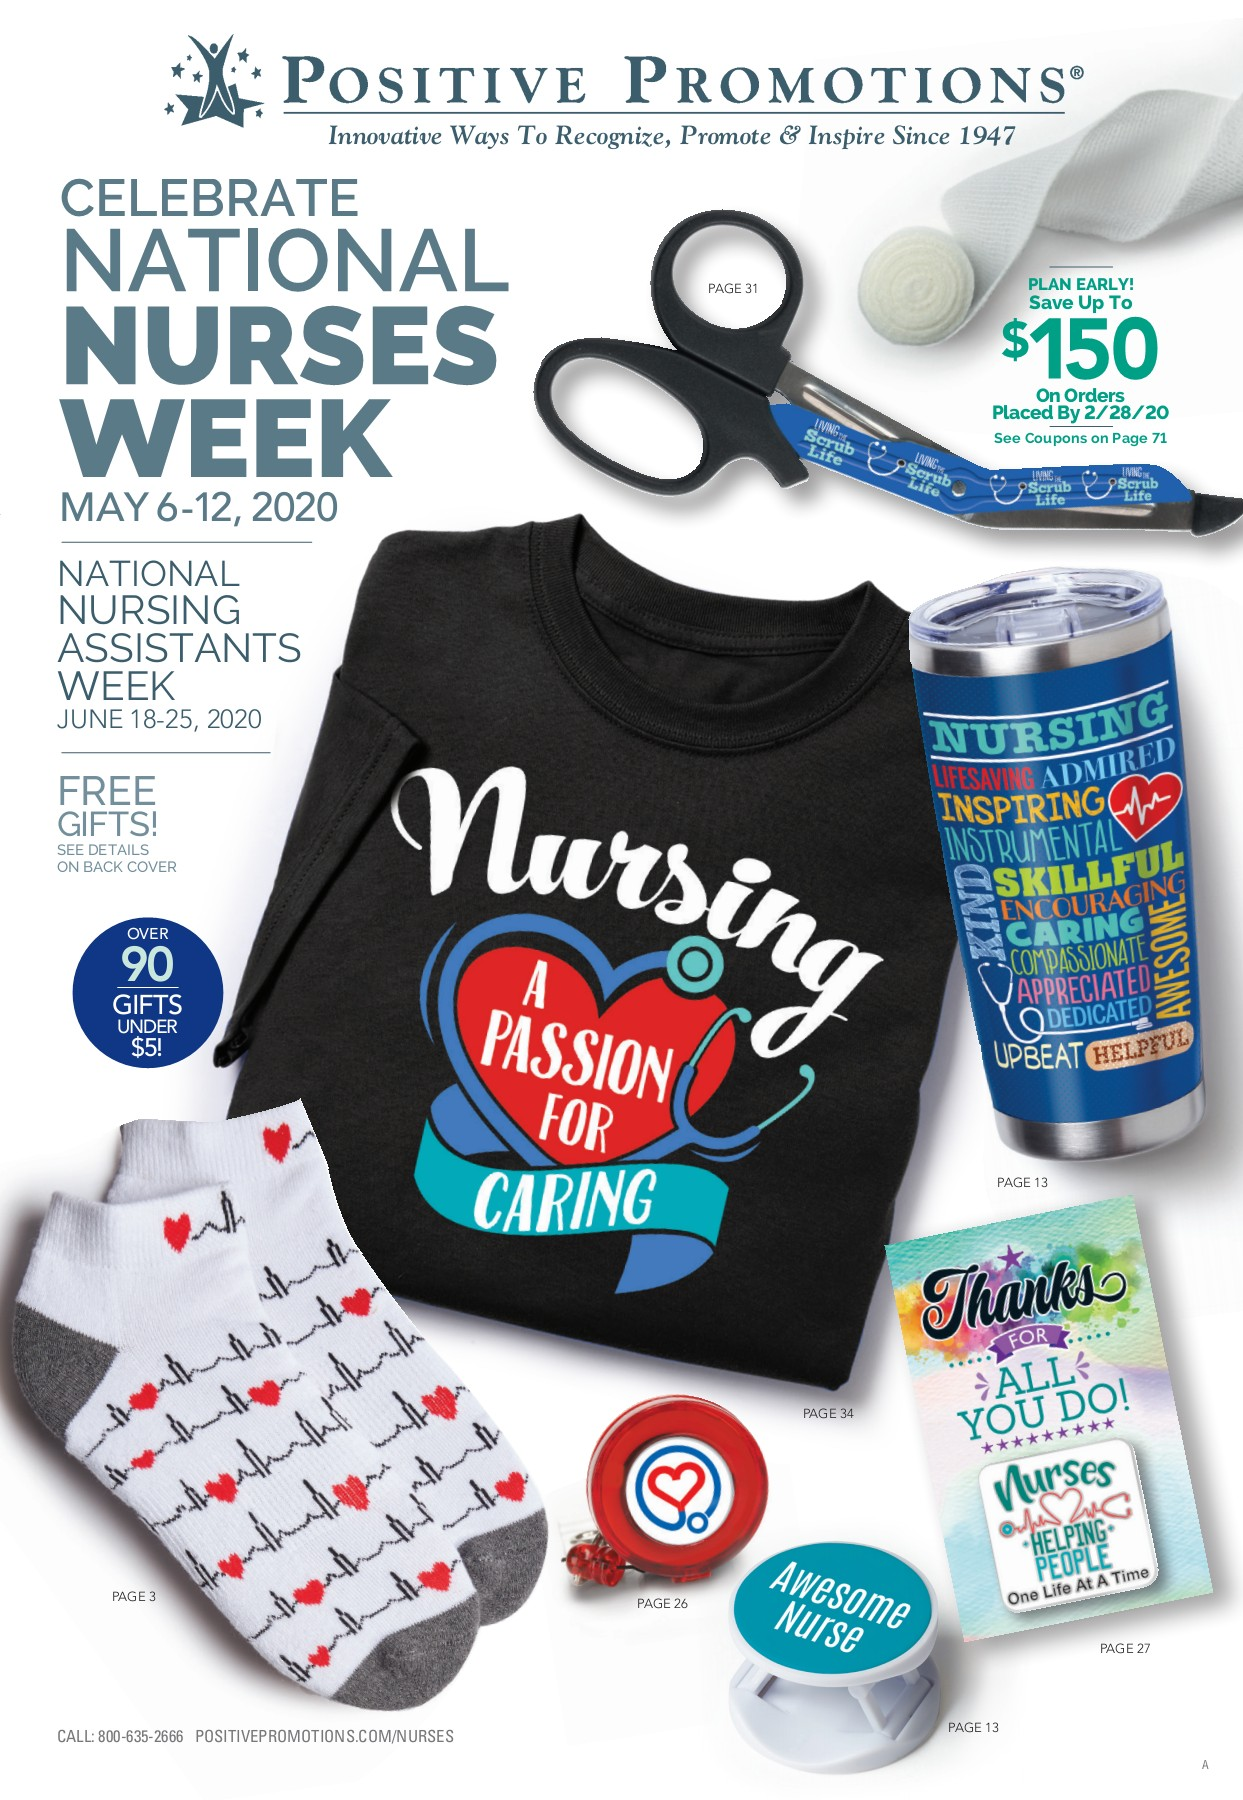 Positive Promotions New 2020 Nurses Week Gift Collection Milled